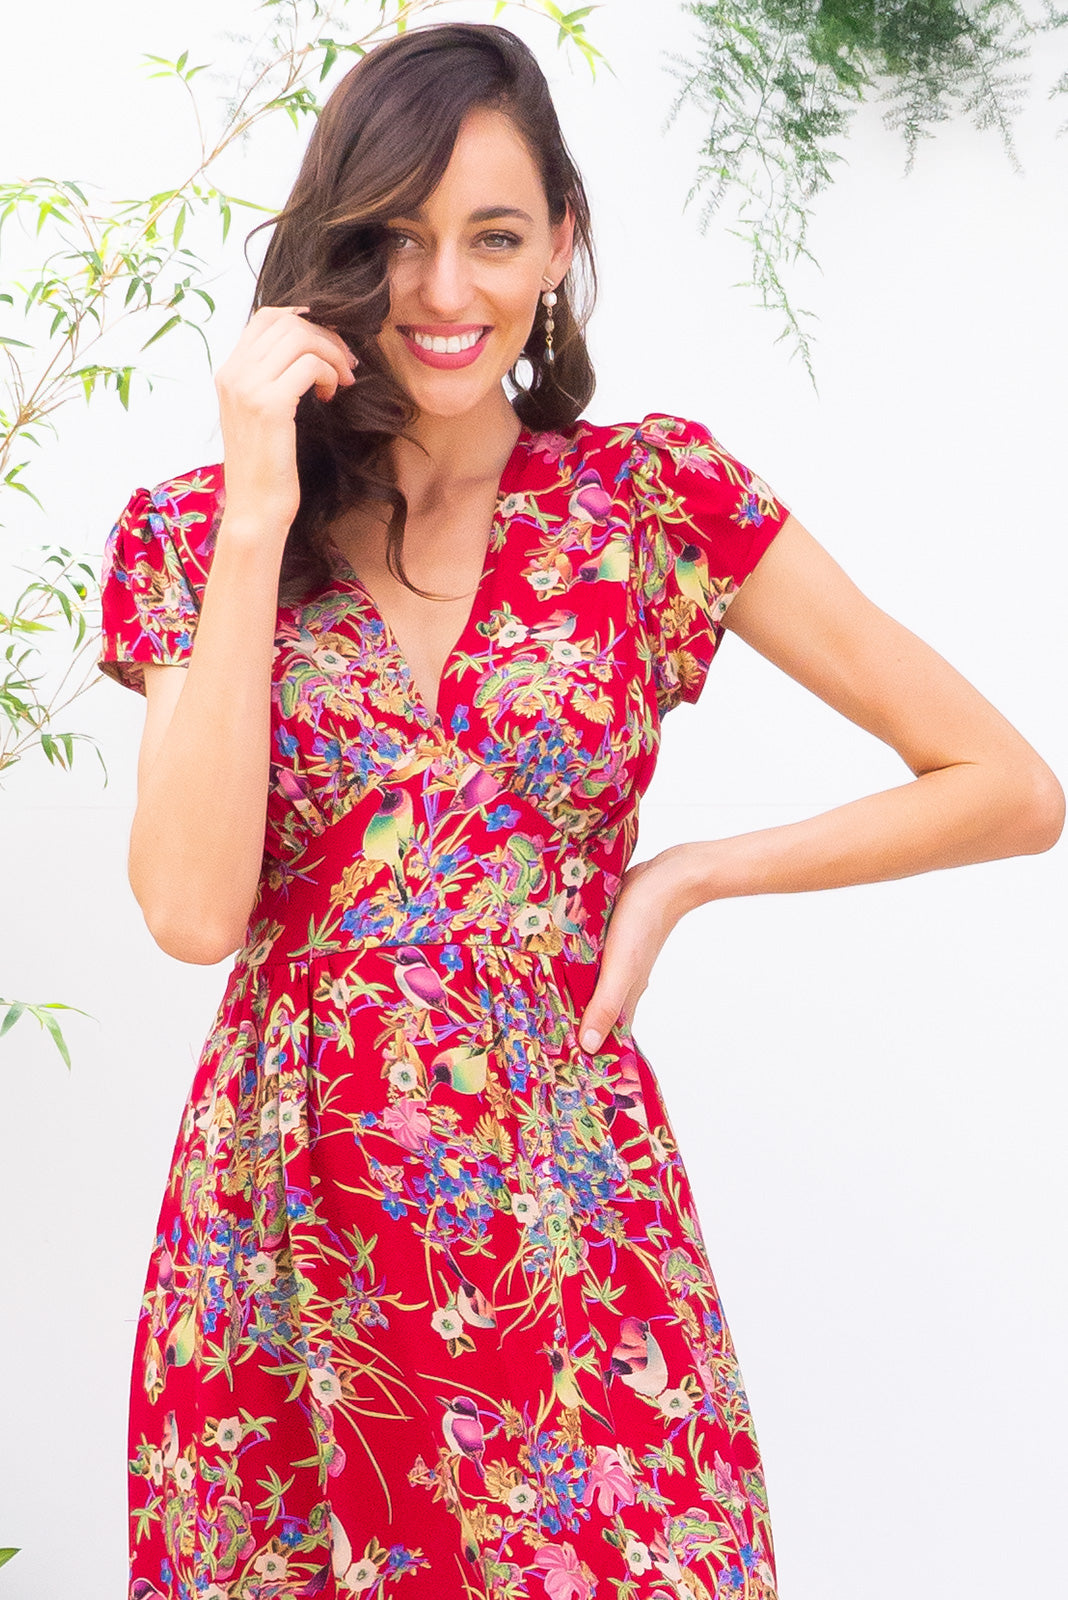 Lizzie Red Honey Eater Midi dress features a vintage inspired fitted basque waist and elasticated waist with a cap sleeve and deep v neck the fabric is a soft woven rayon in a bright red floral and bird print